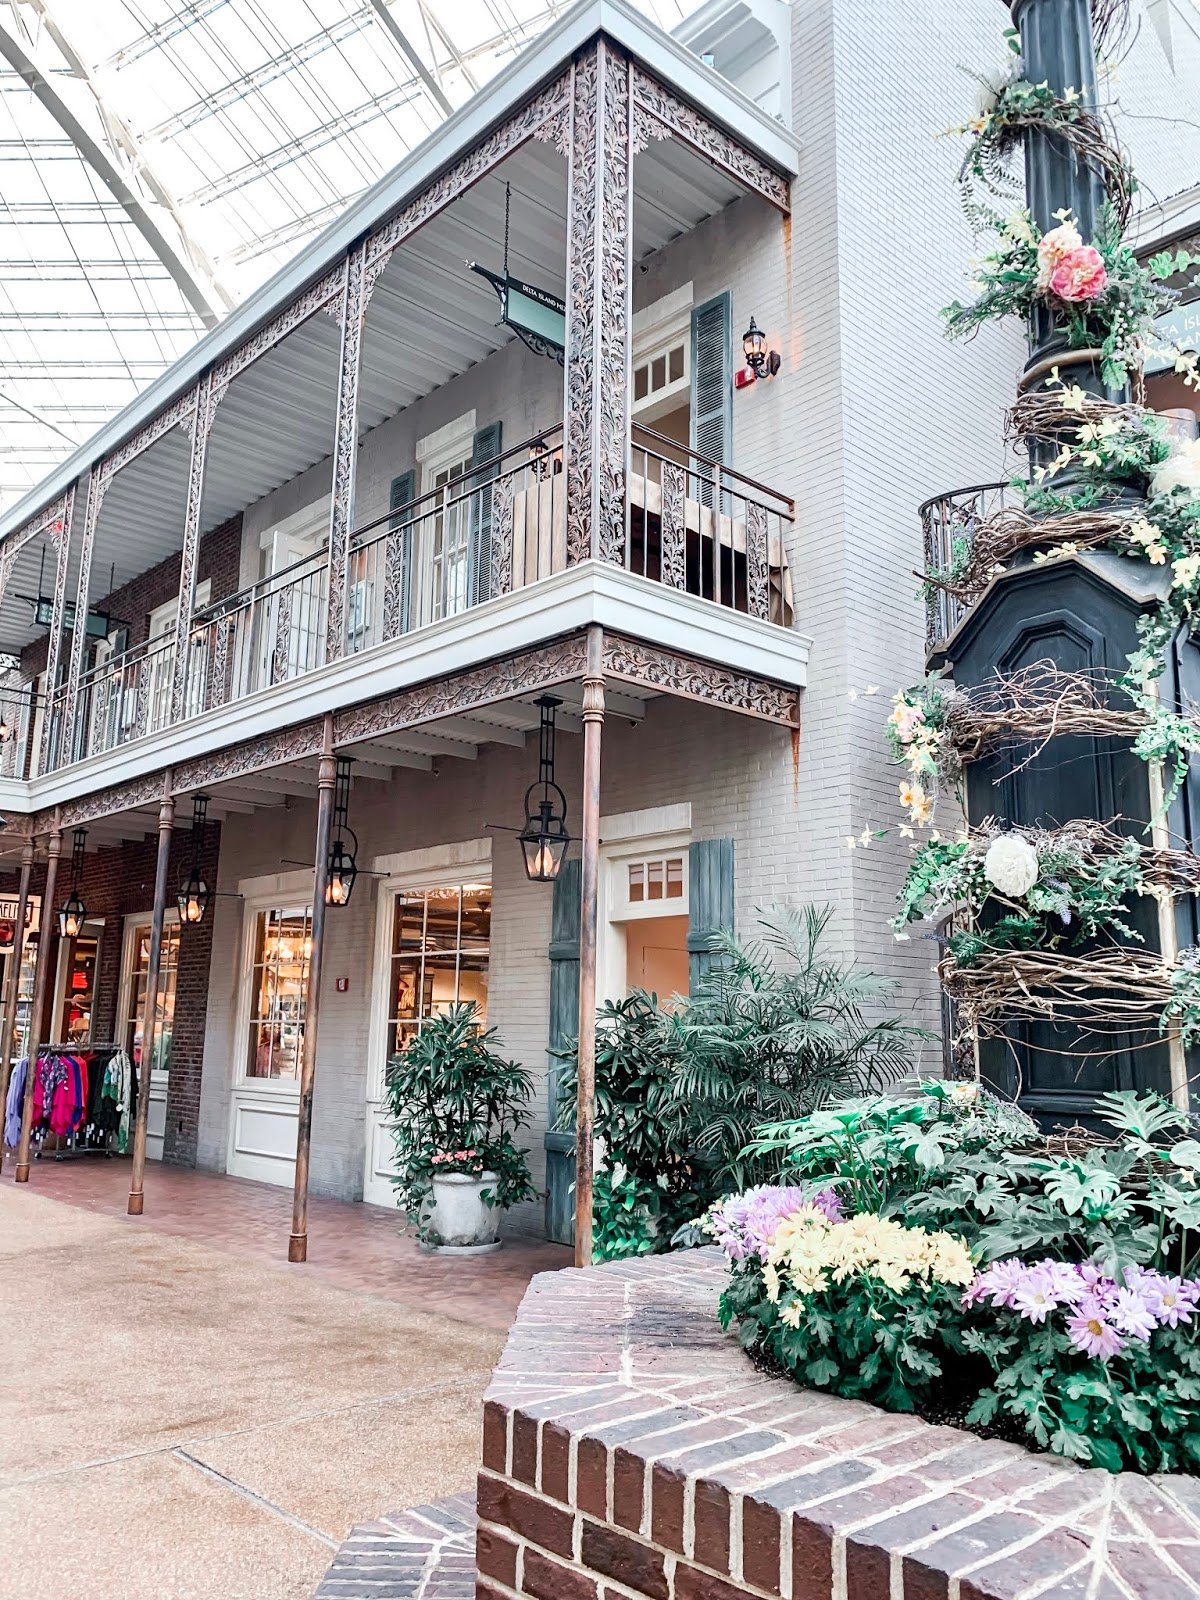 My Trip To The Gaylord Opryland Resort W/Soundwaves